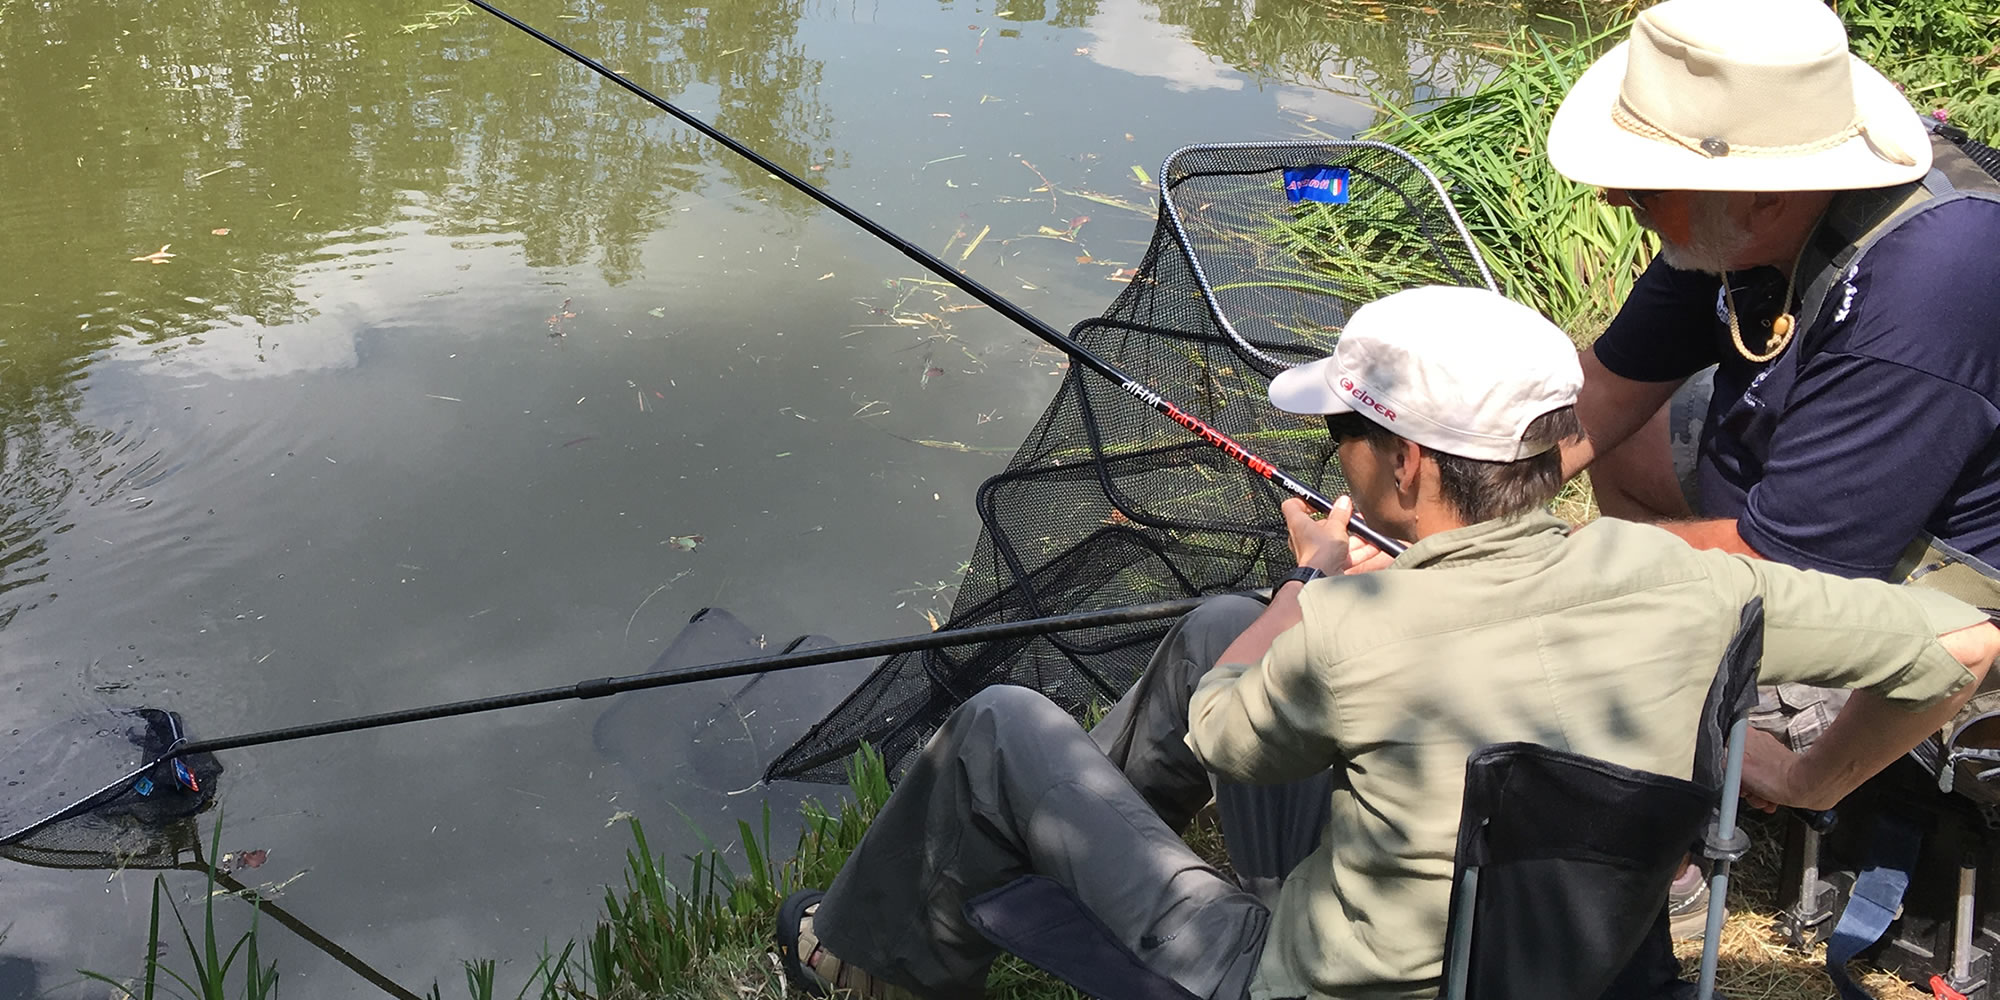 Male and coach coarse fishing at a Get Fishing beginner angling event